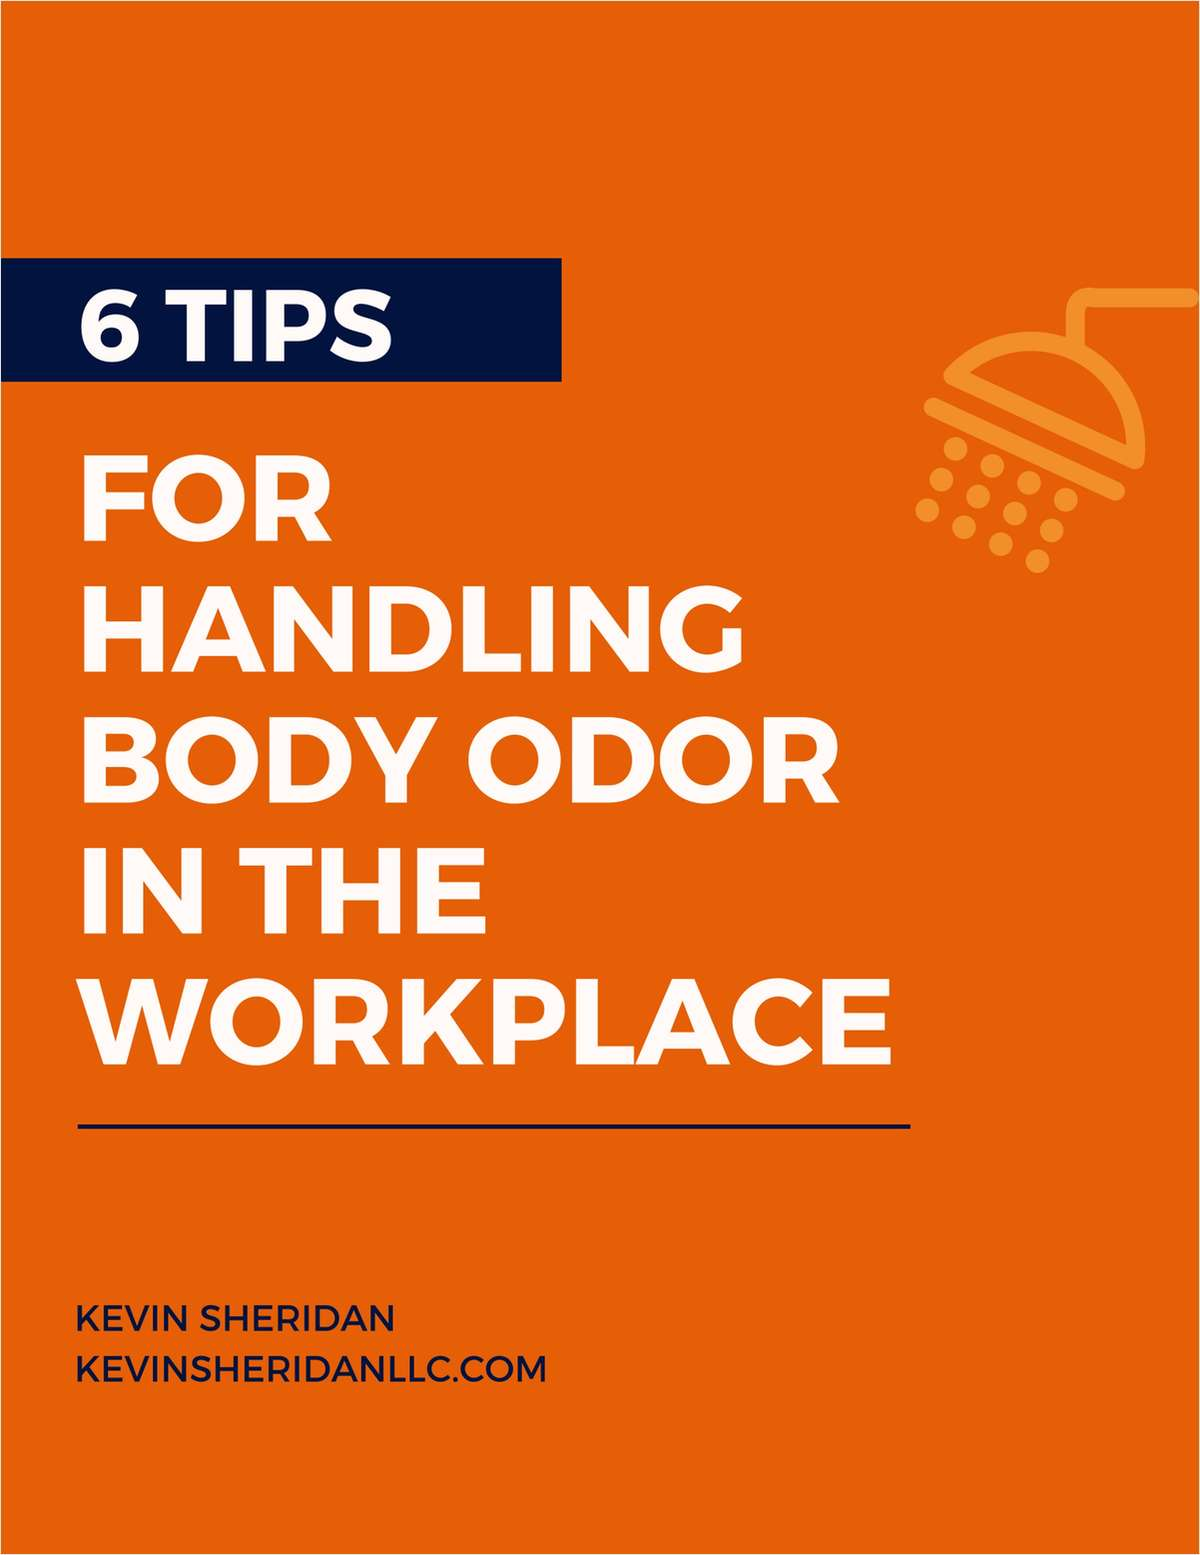 6 Tips for Handling Body Odor in the Workplace